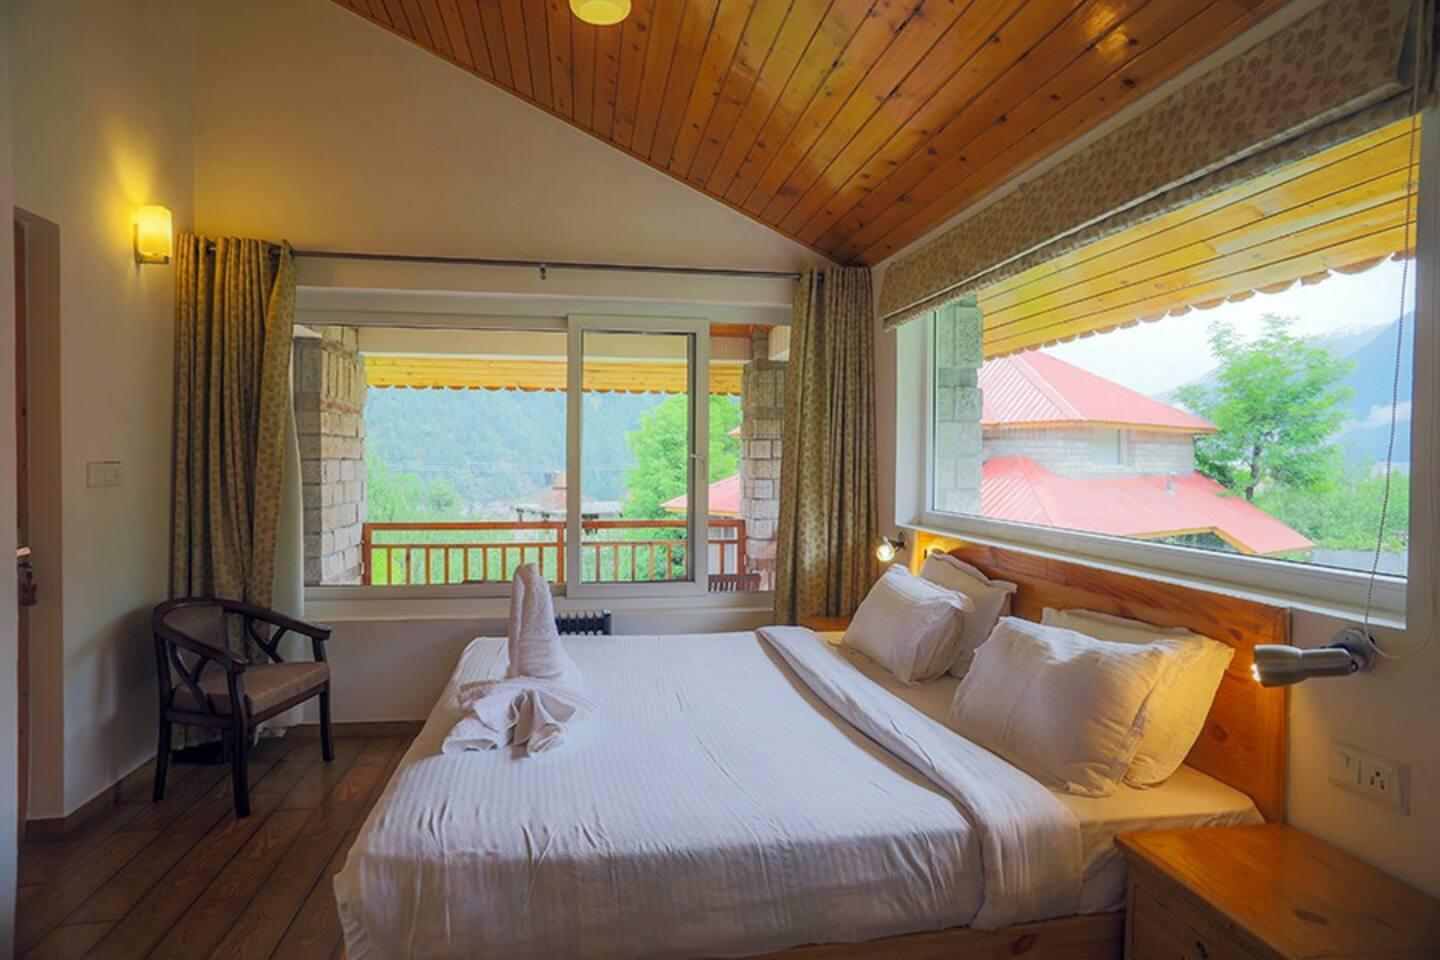 The Amrit Manali Two By Vista Rooms